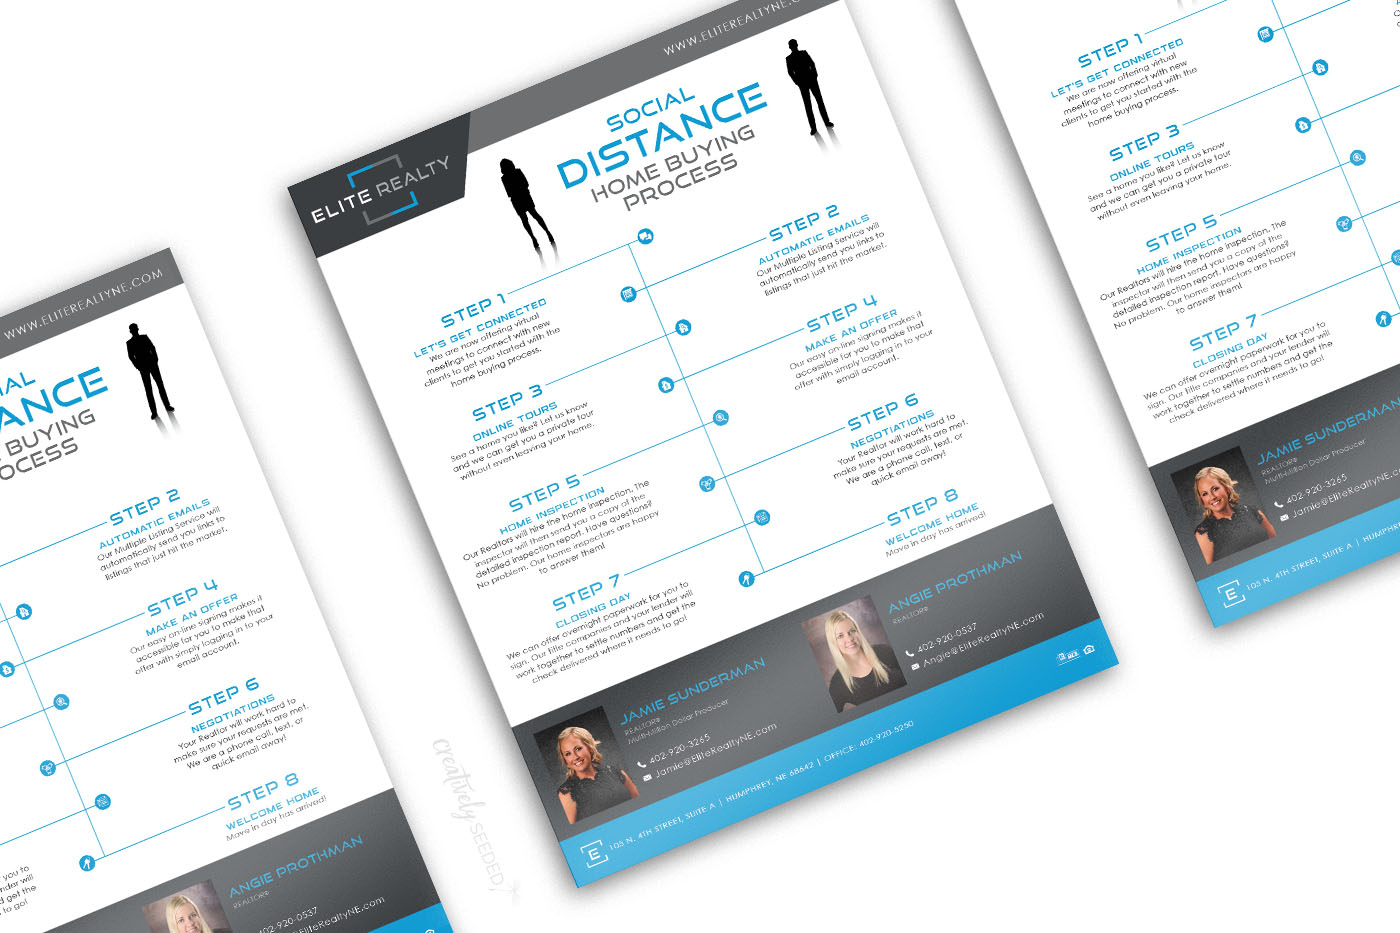 Elite Realty Social Distancing Flyer Design Creatively Seeded